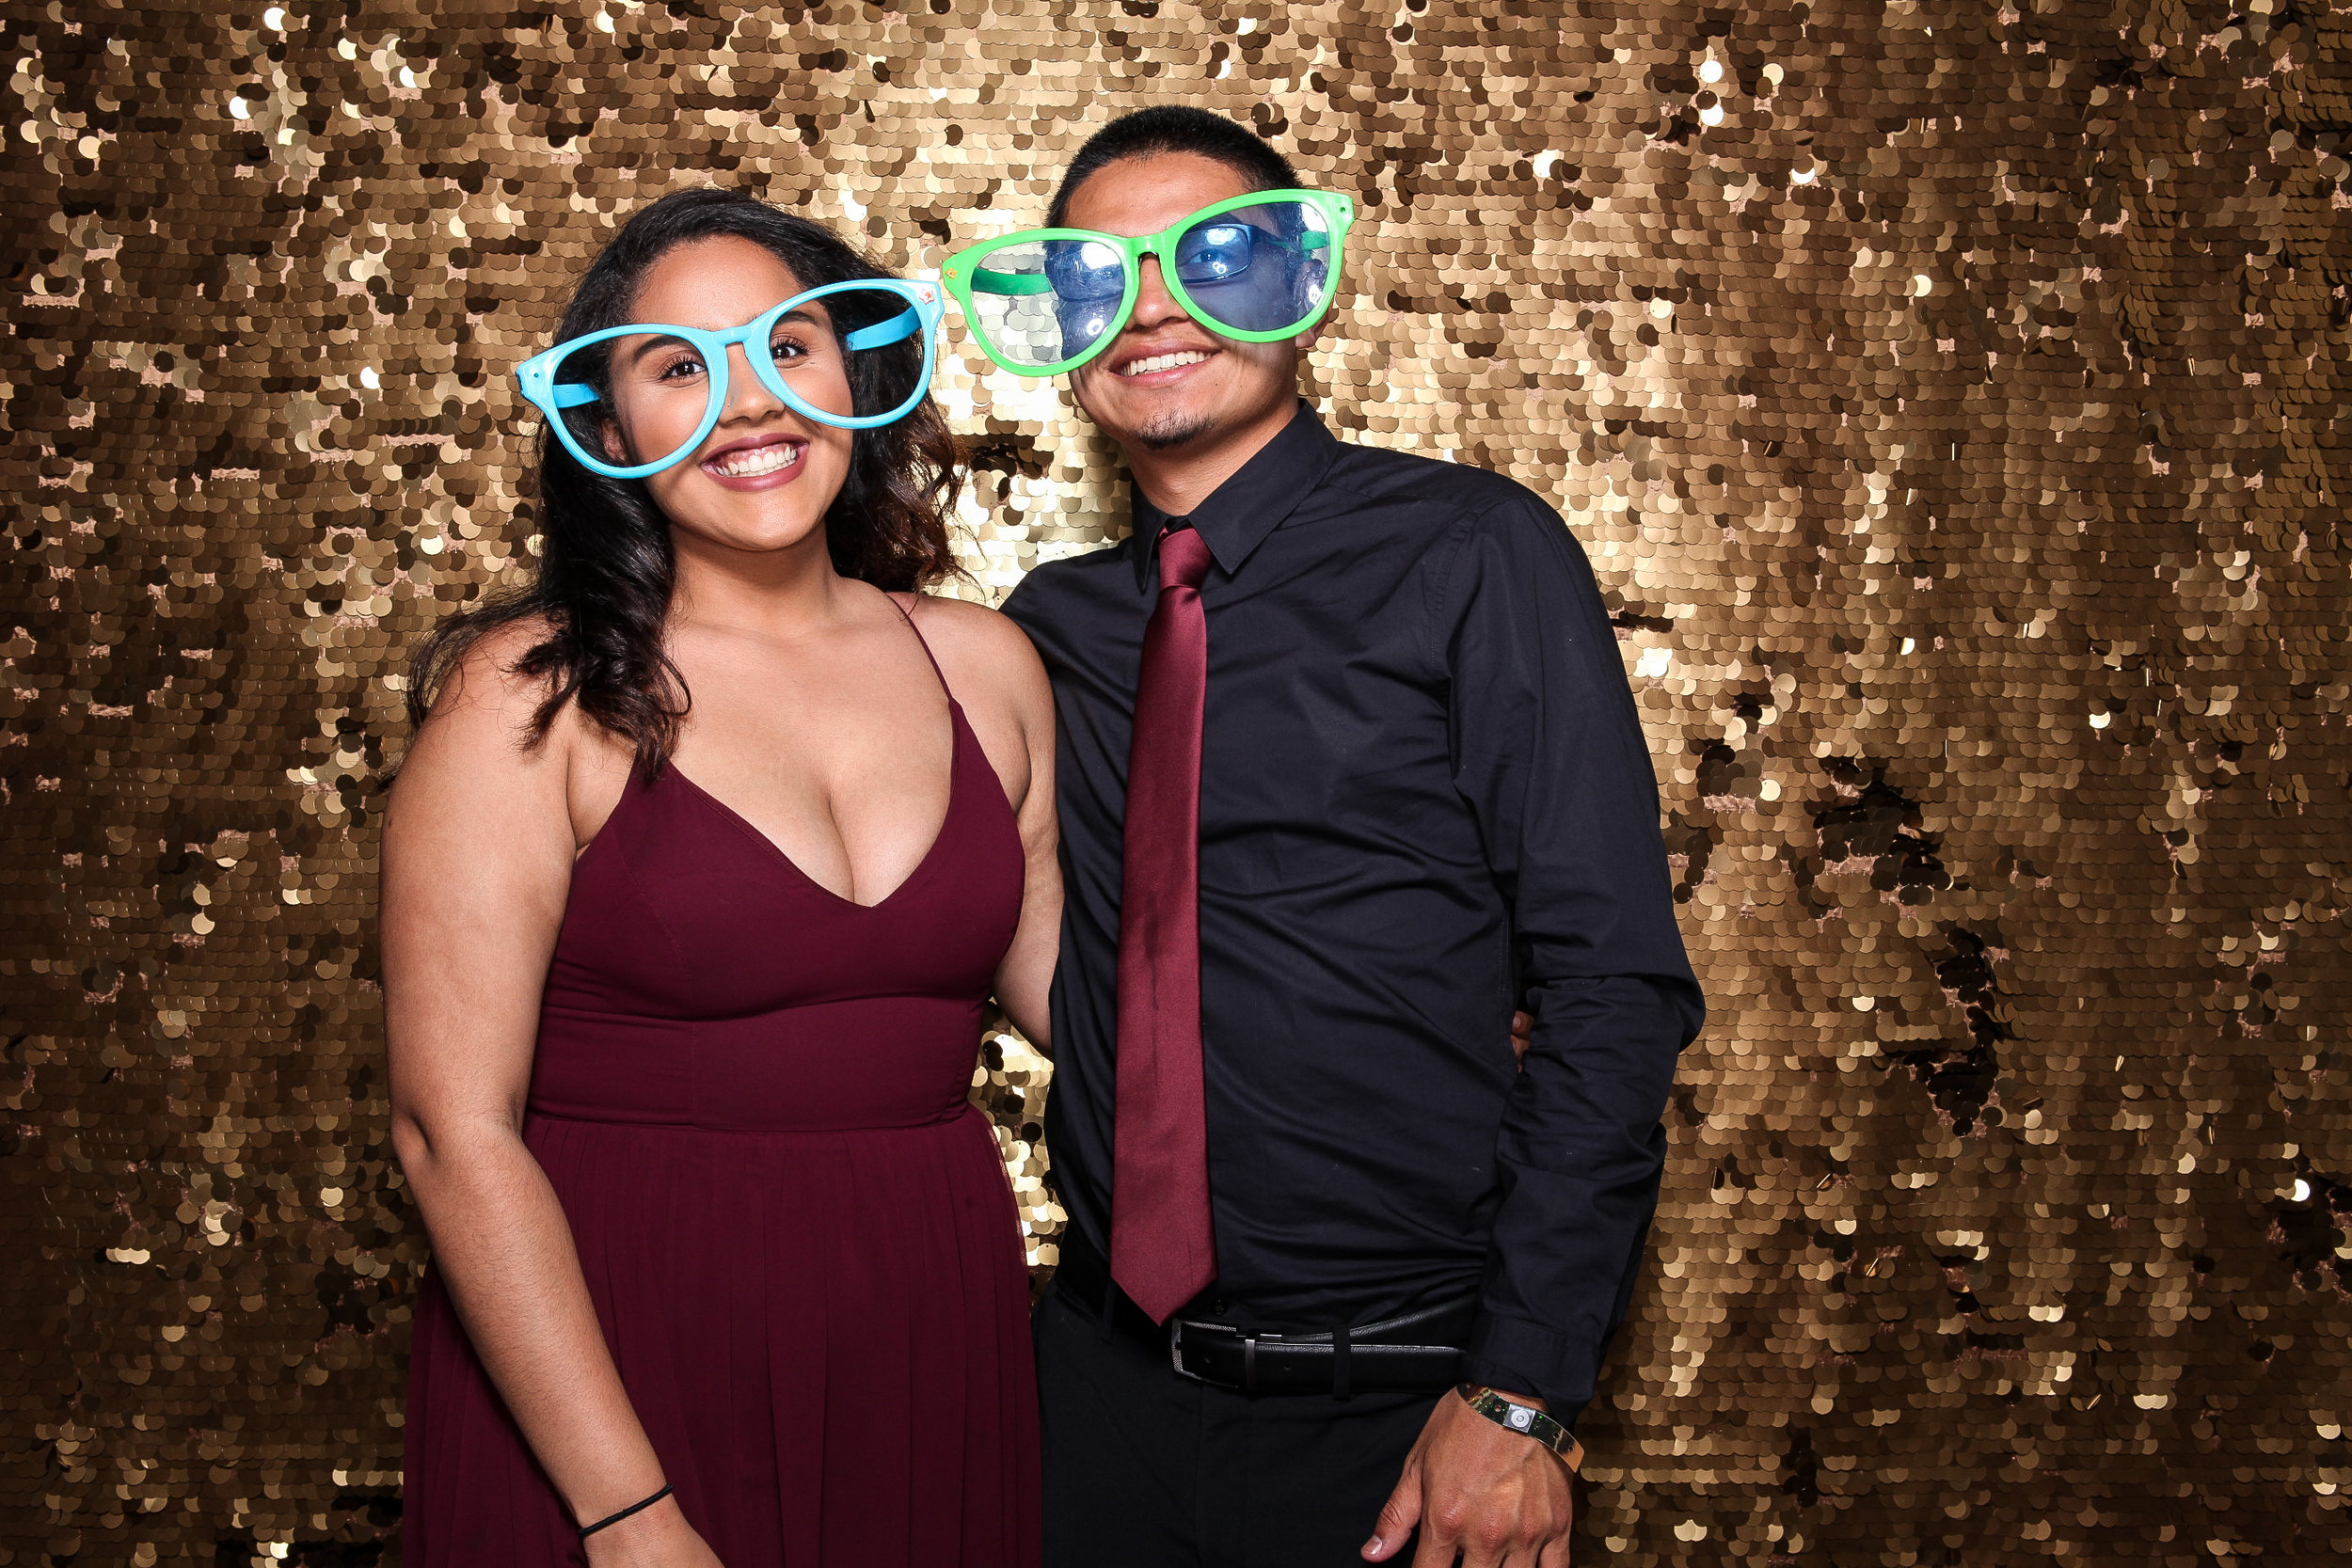 20190503_Adelphi_Senior_Formal-325.jpg